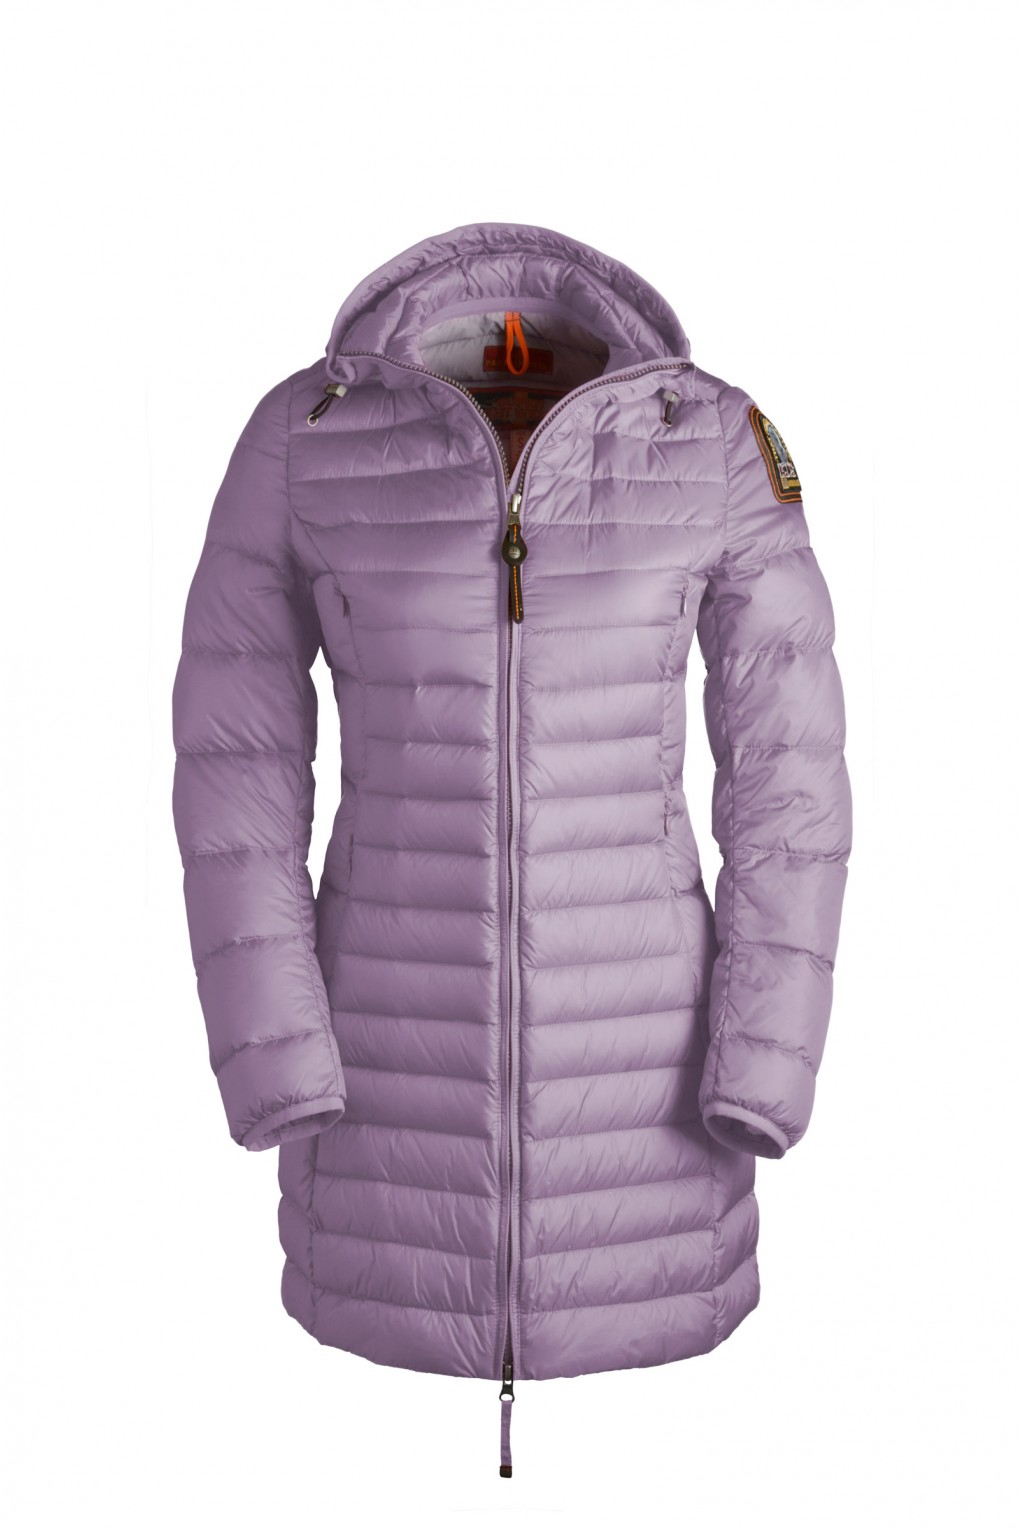 parajumpers IRENE6 woman outerwear Mauve